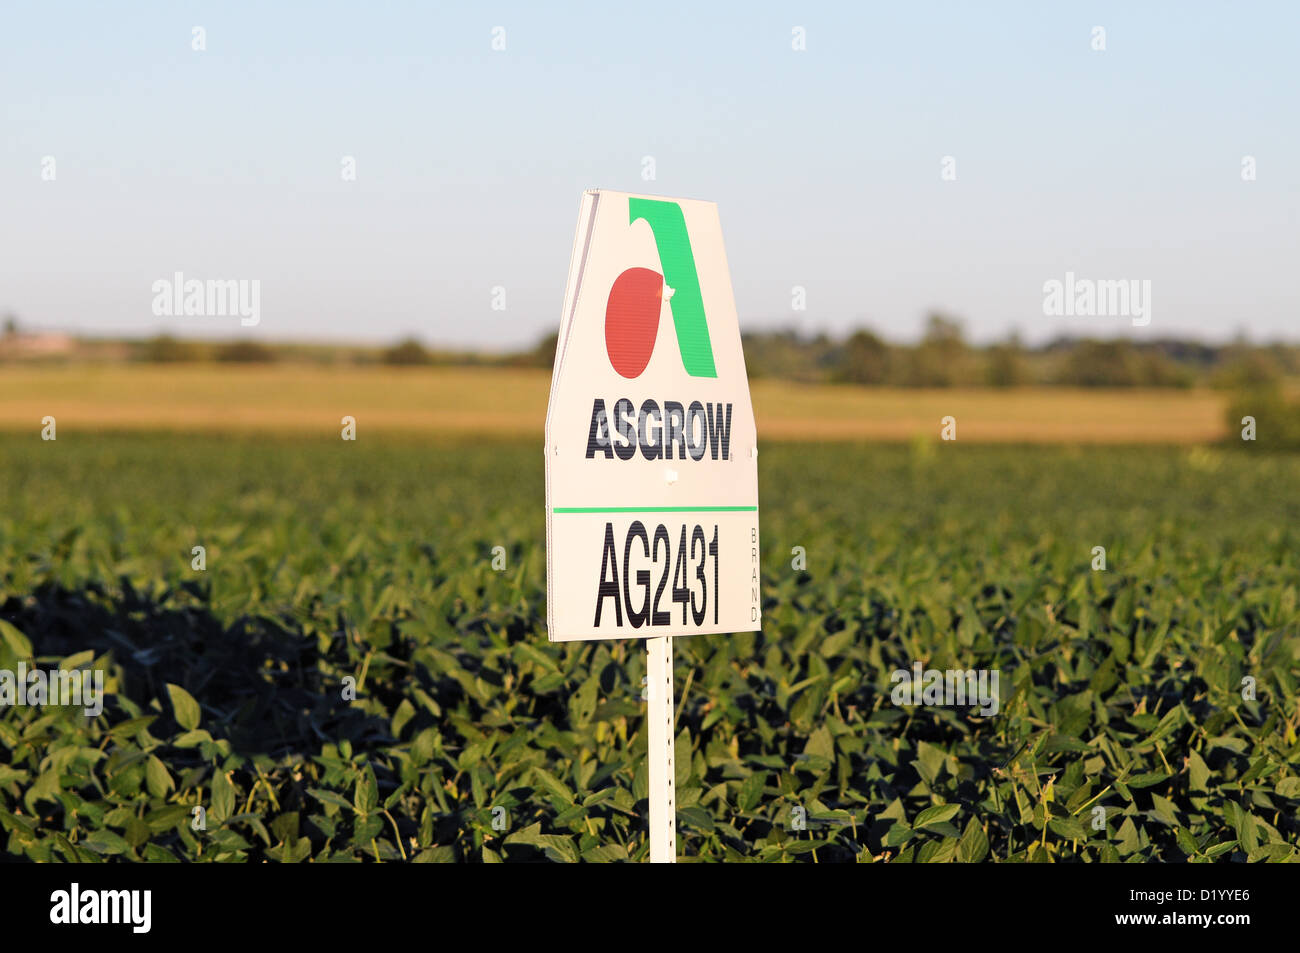 Agriculture Asgrow AG2431 seed sign rests by a field of soybeans on an Illinois farm. USA. - Stock Image